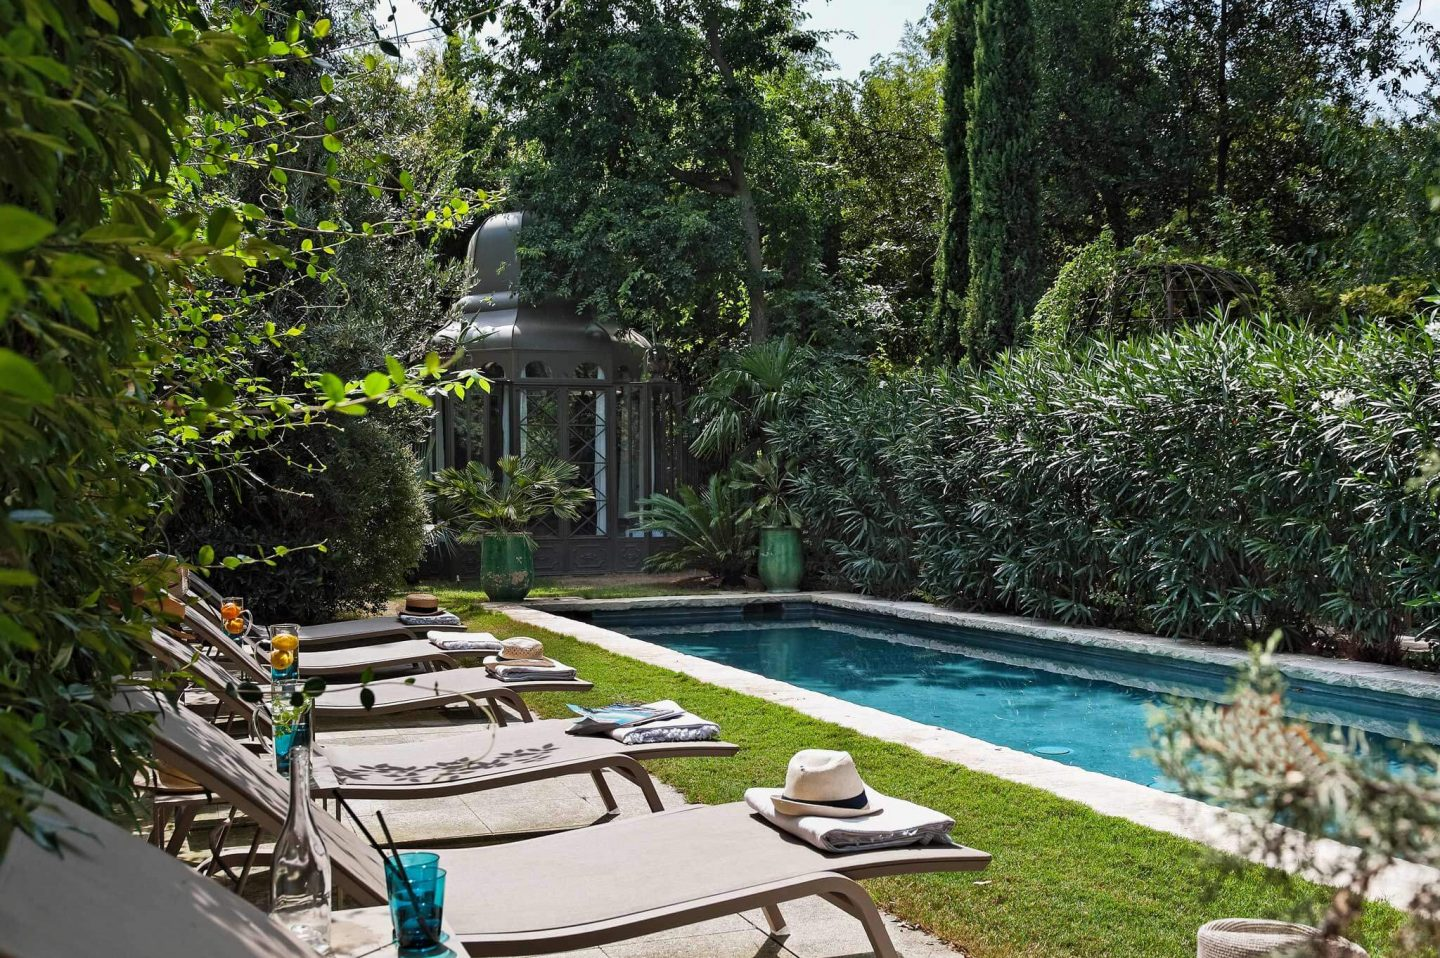 Luxurious pool. Beautiful French country garden inspiration from a luxurious property in the South of France. Breathtaking 19th century restored French chateau with largest private garden in Avignon. Avignon Hôtel Particulier. Photo: Haven In.